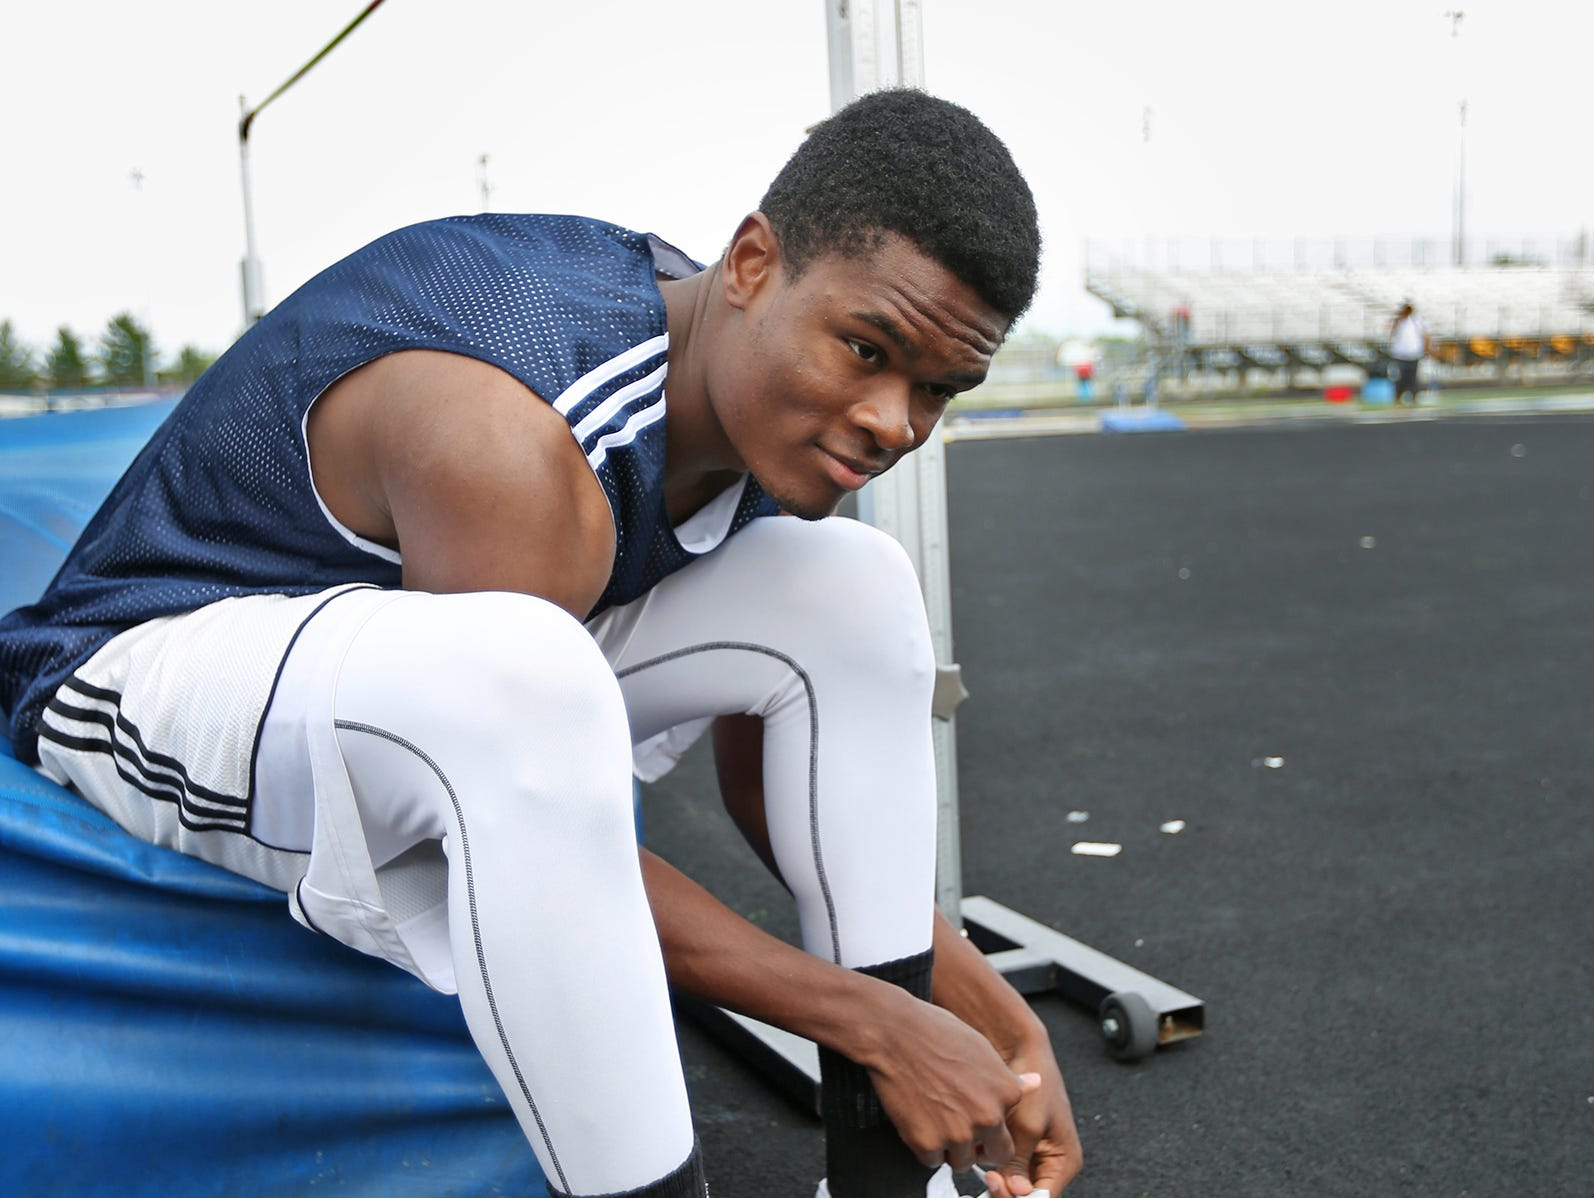 HSE's Francis Ehigbai puts on his shoes for high jump practice, June 1, 2015.